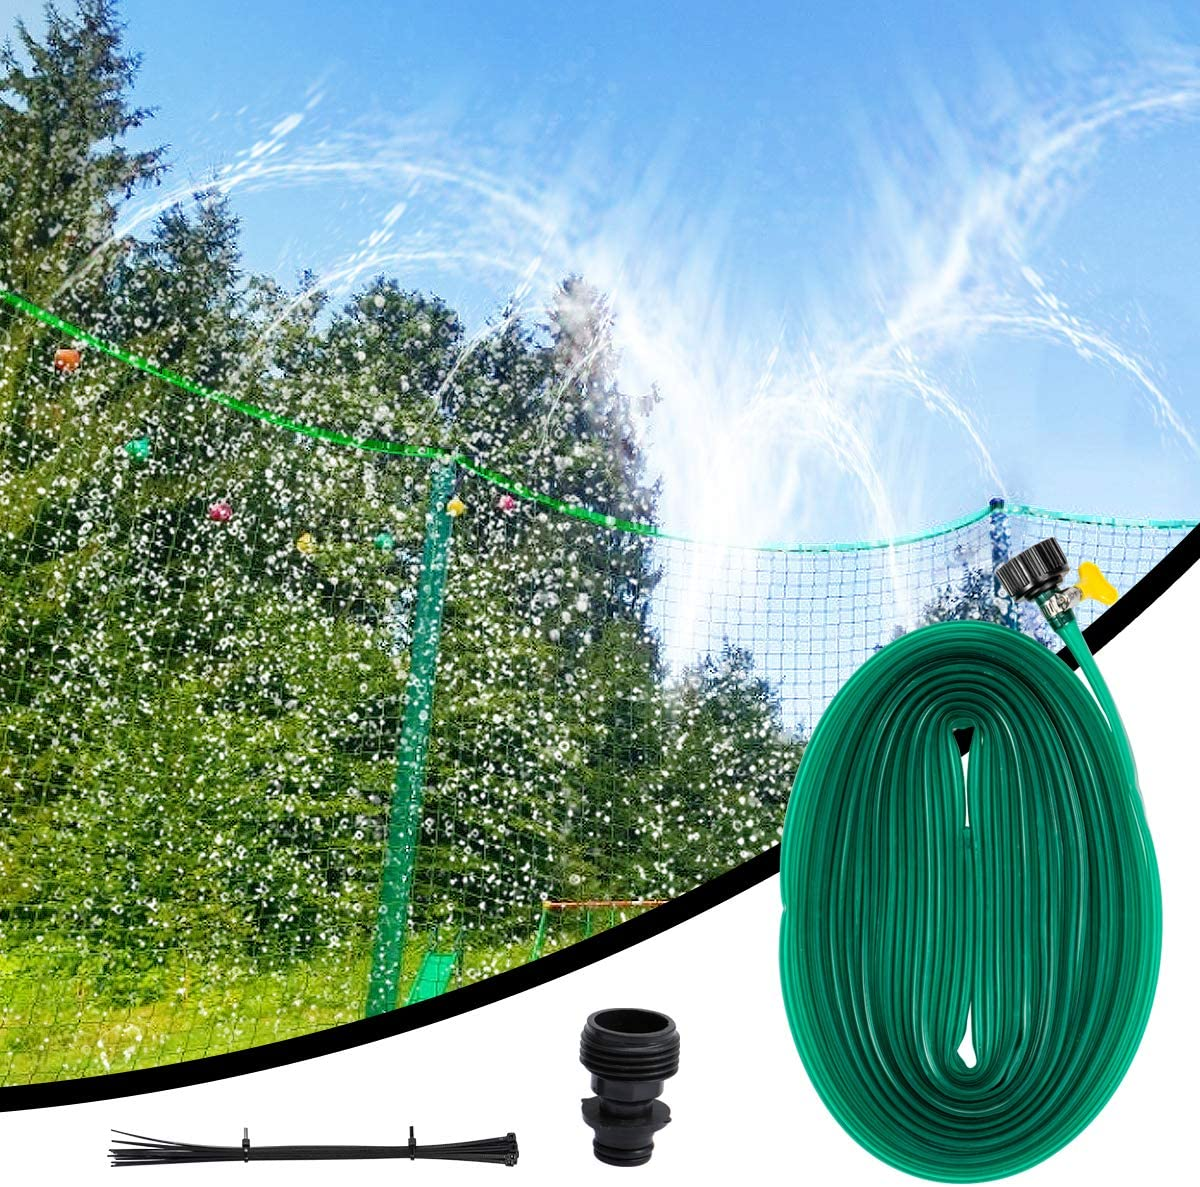 Biubee 49 Feet Long Trampoline Sprinkler- Fun Summer Trampoline Waterpark Heavy Duty Sprinkler Hose Made to Attach On Protective Net Enclosure for Outdoor Water Game Toys Accessories